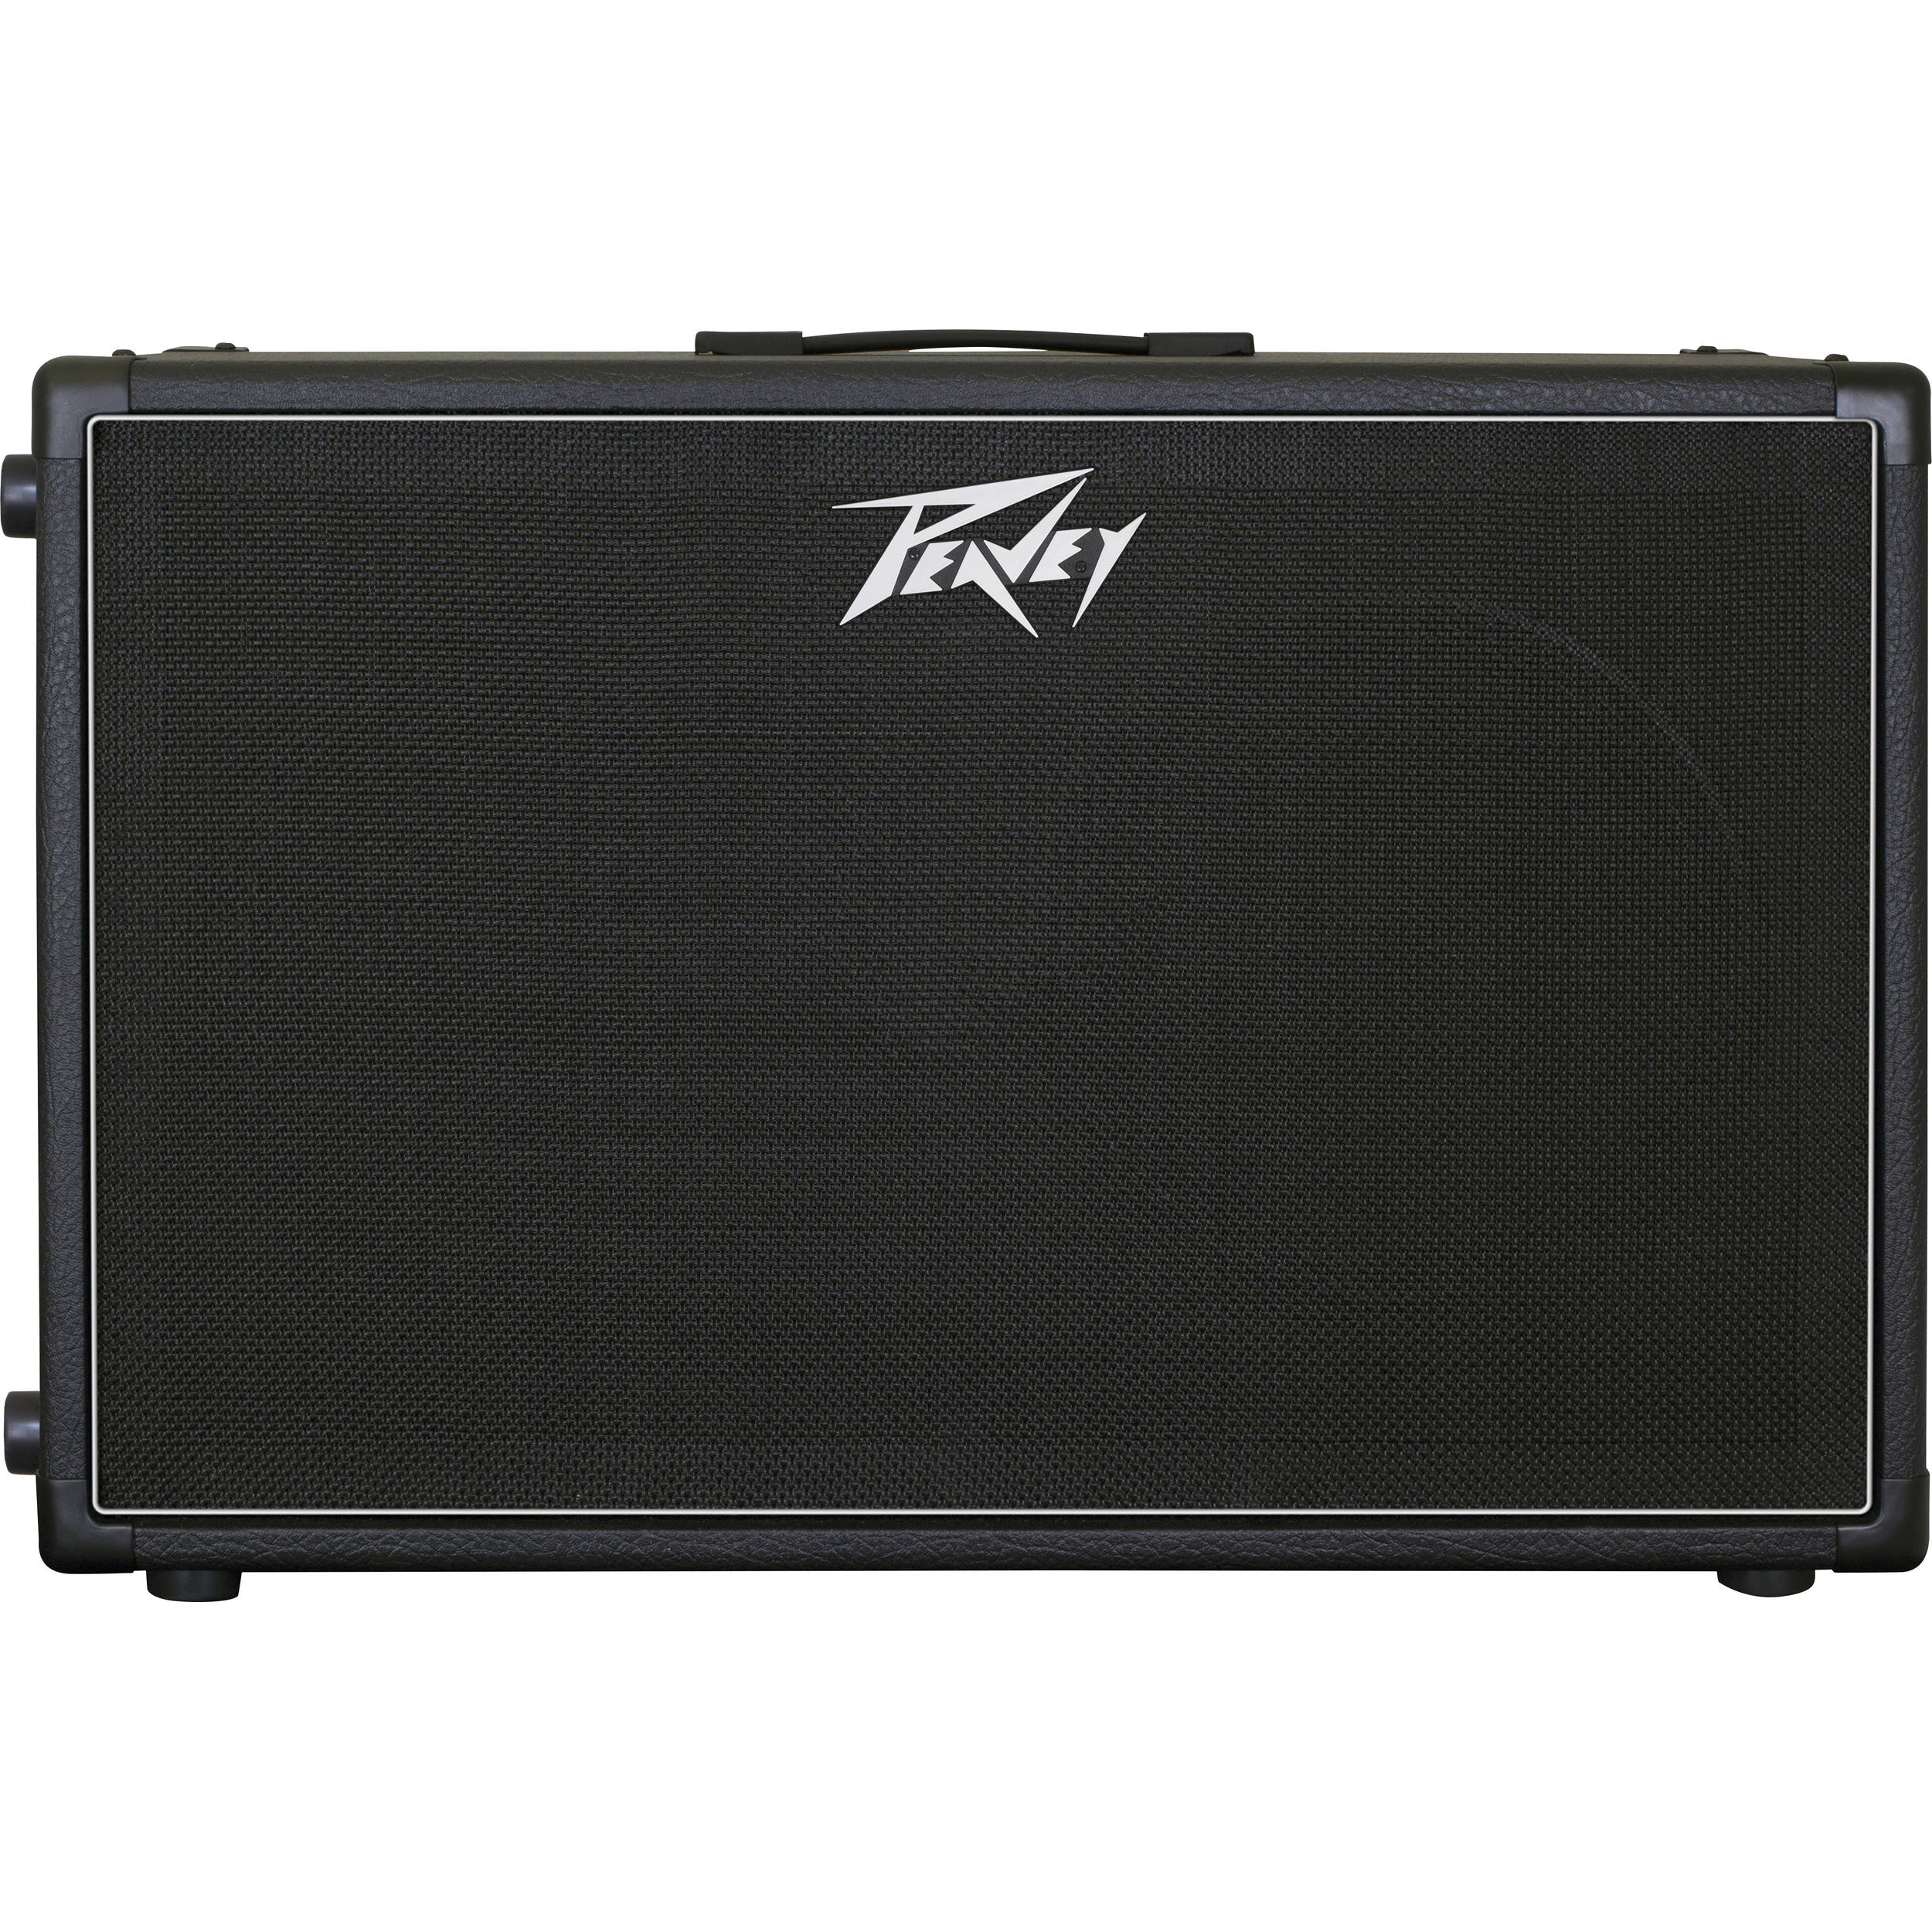 peavey 212 6 electric guitar dual 12 speaker combo amp 50w celestion speakers pev15 3615010 rs. Black Bedroom Furniture Sets. Home Design Ideas